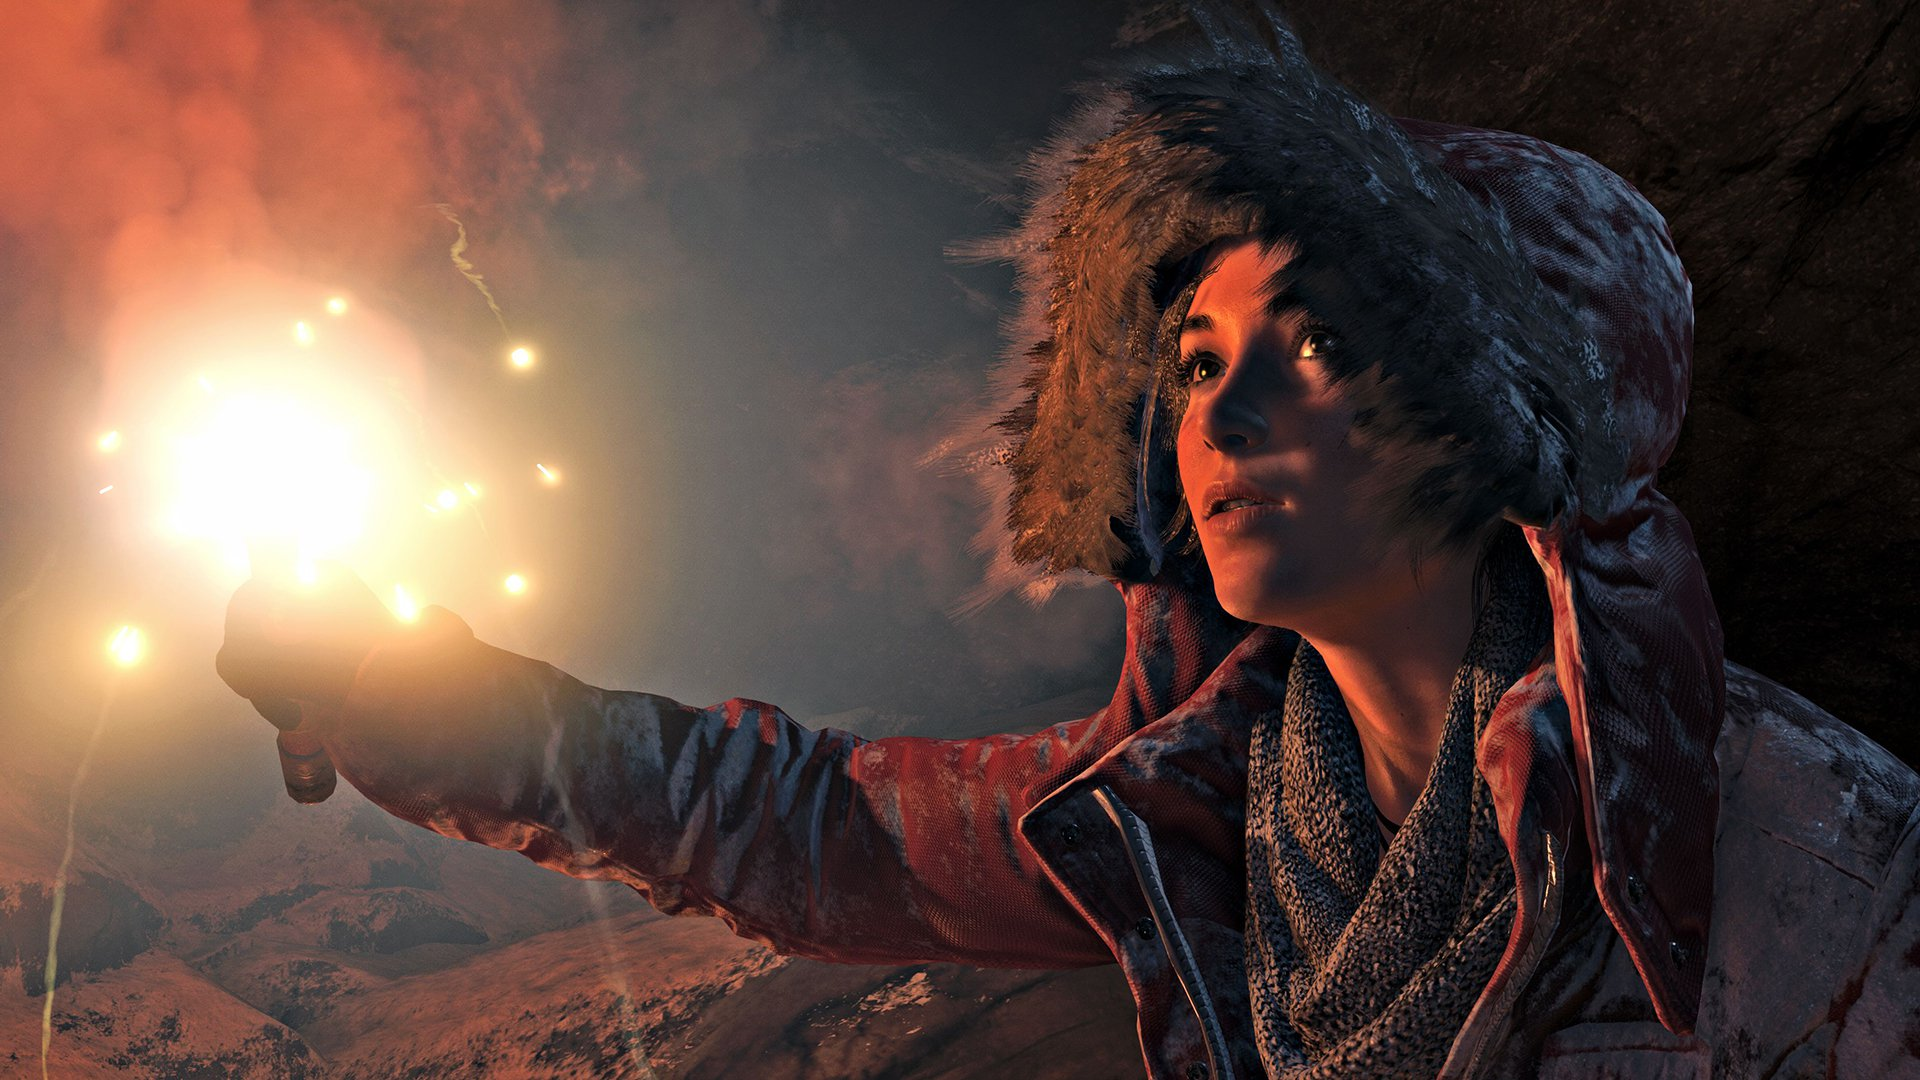 Rise of the Tomb Raider is known for being a graphics intensive game.